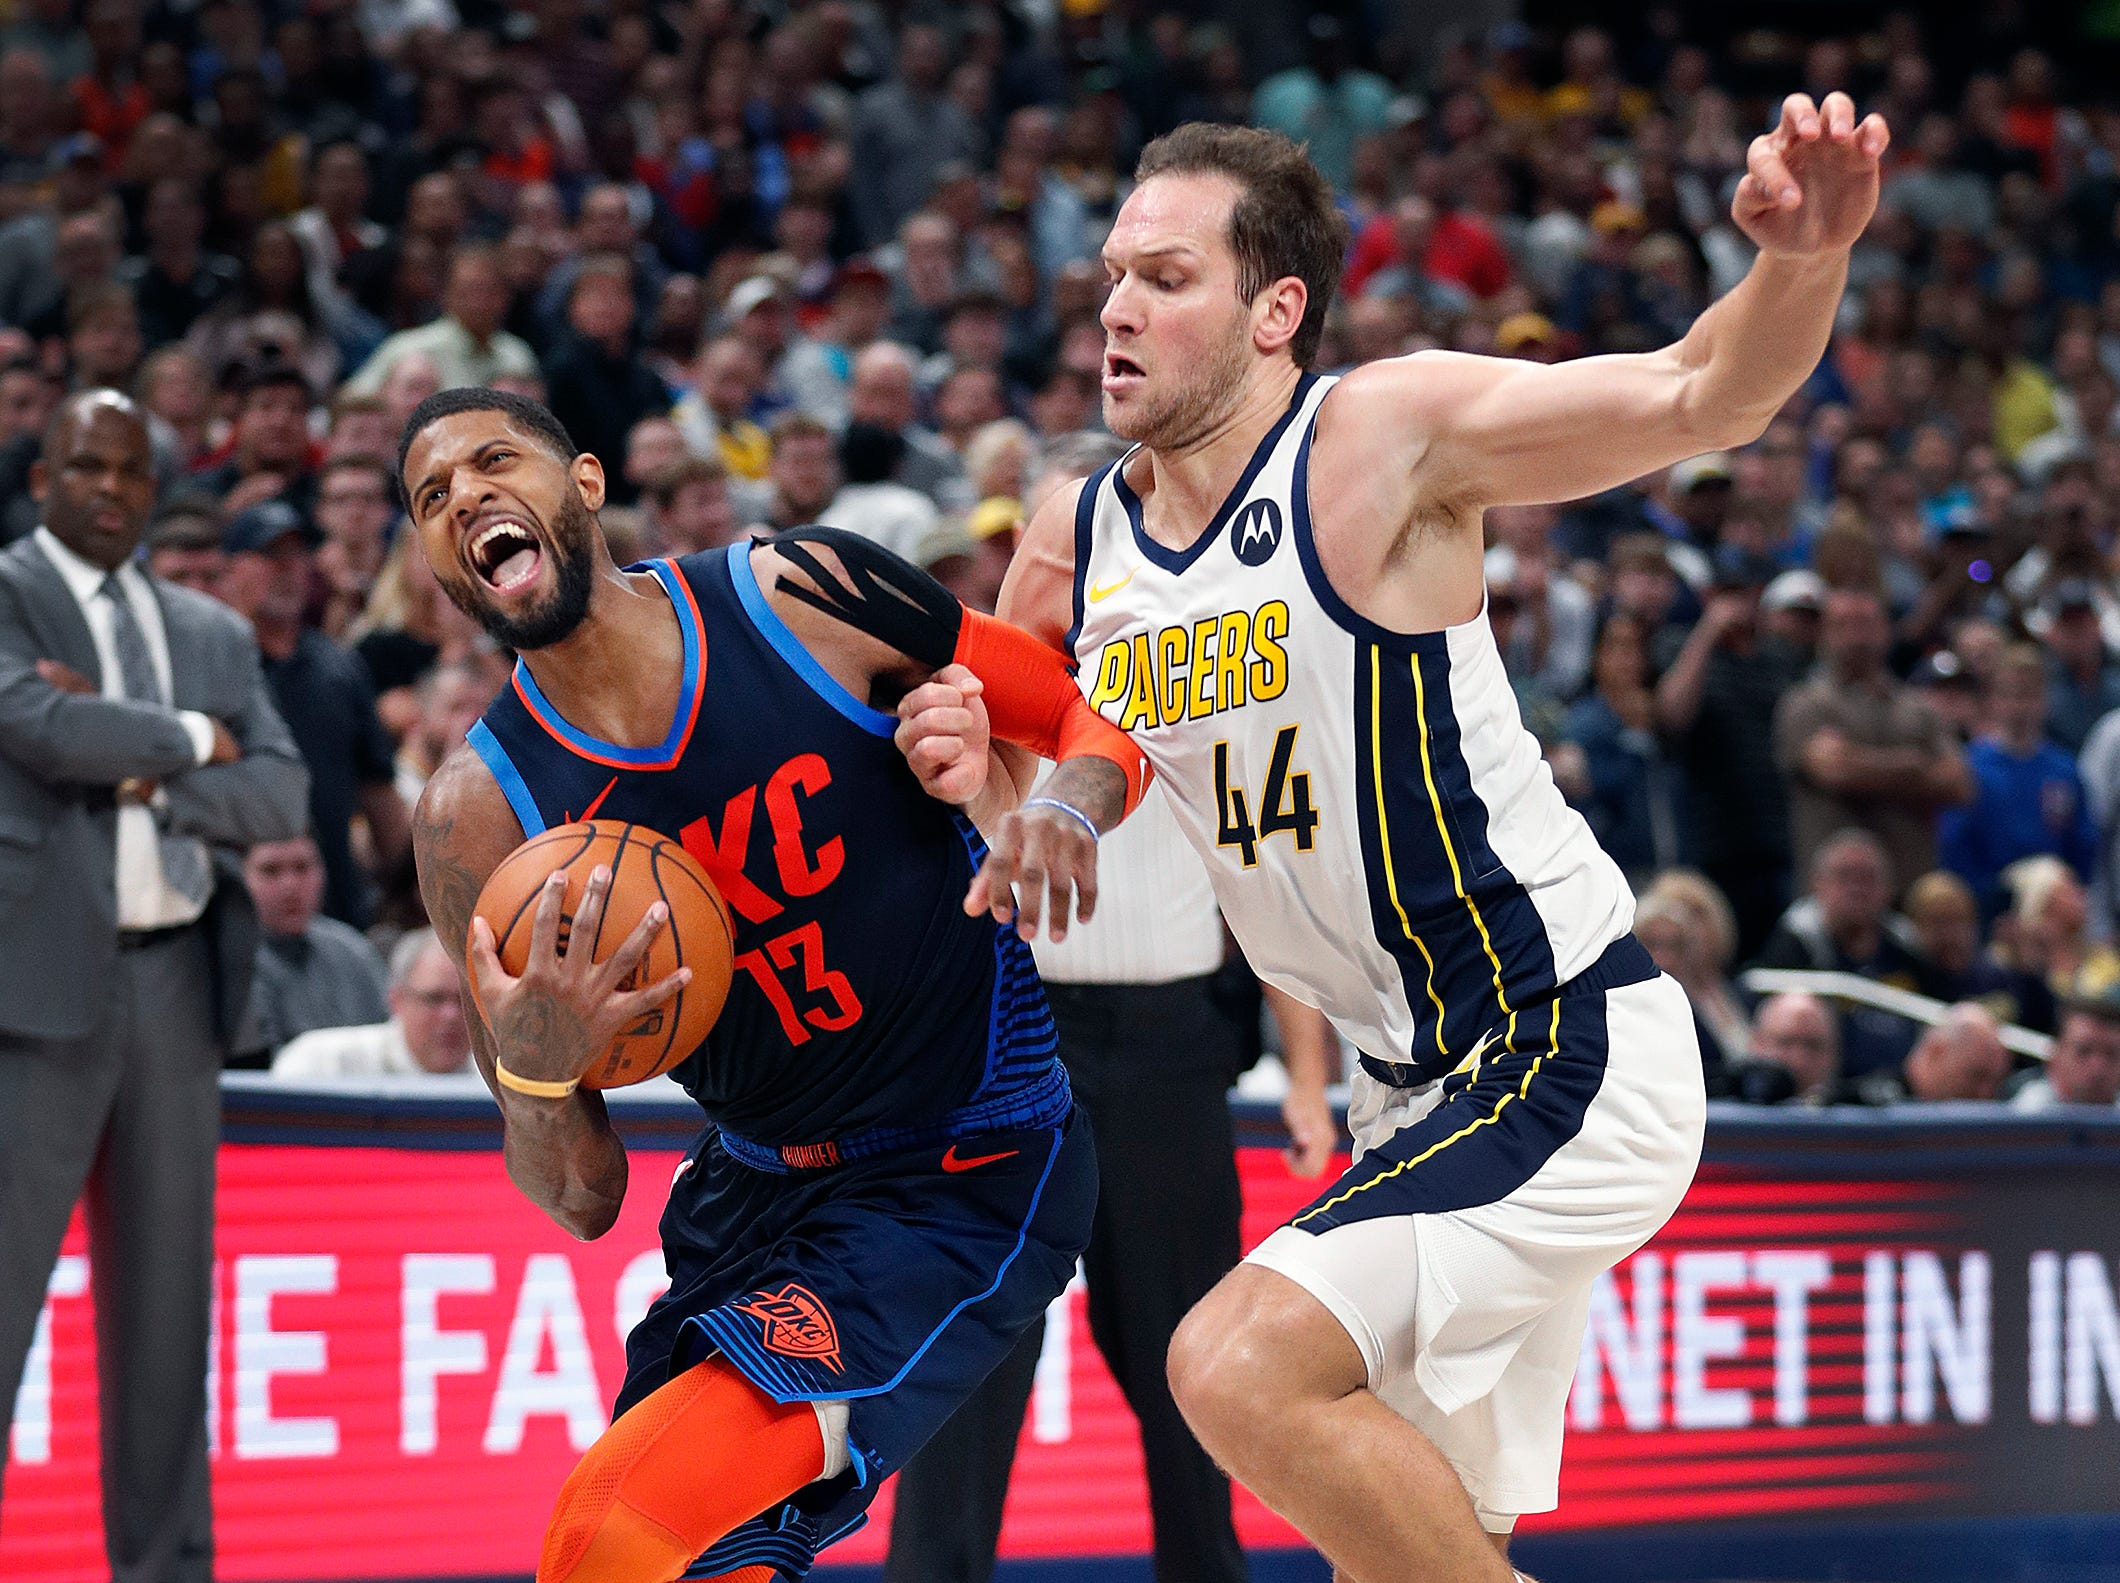 Oklahoma City Thunder forward Paul George (13) attempts to drive around Indiana Pacers forward Bojan Bogdanovic (44) in the second half of their game at Bankers Life Fieldhouse on Thursday, Mar. 14, 2019. The Pacers defeated the Thunder 108-106.